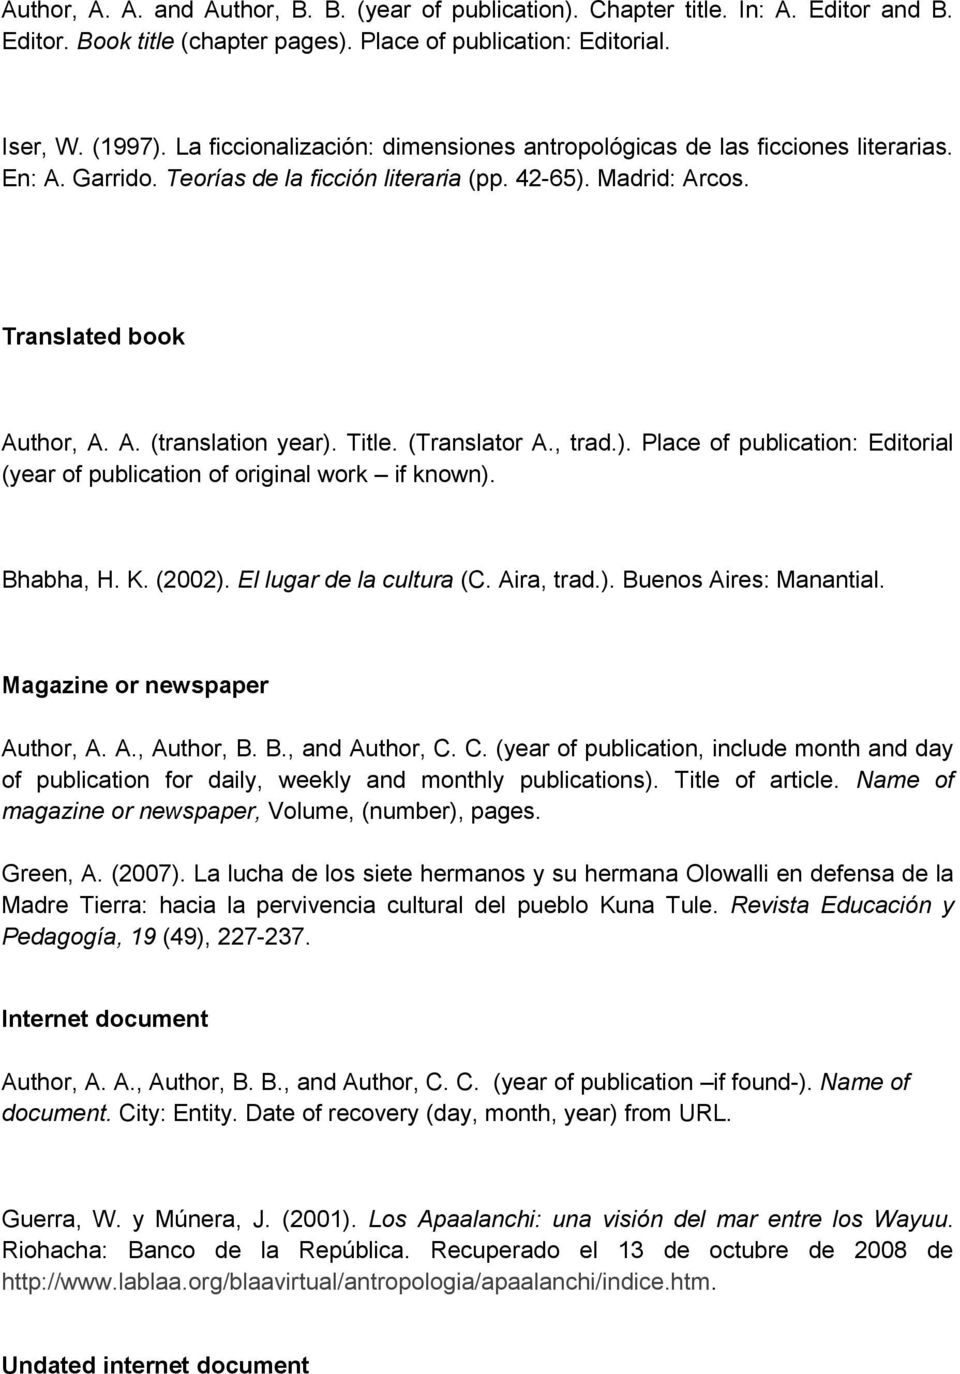 Title. (Translator A., trad.). Place of publication: Editorial (year of publication of original work if known). Bhabha, H. K. (2002). El lugar de la cultura (C. Aira, trad.). Buenos Aires: Manantial.